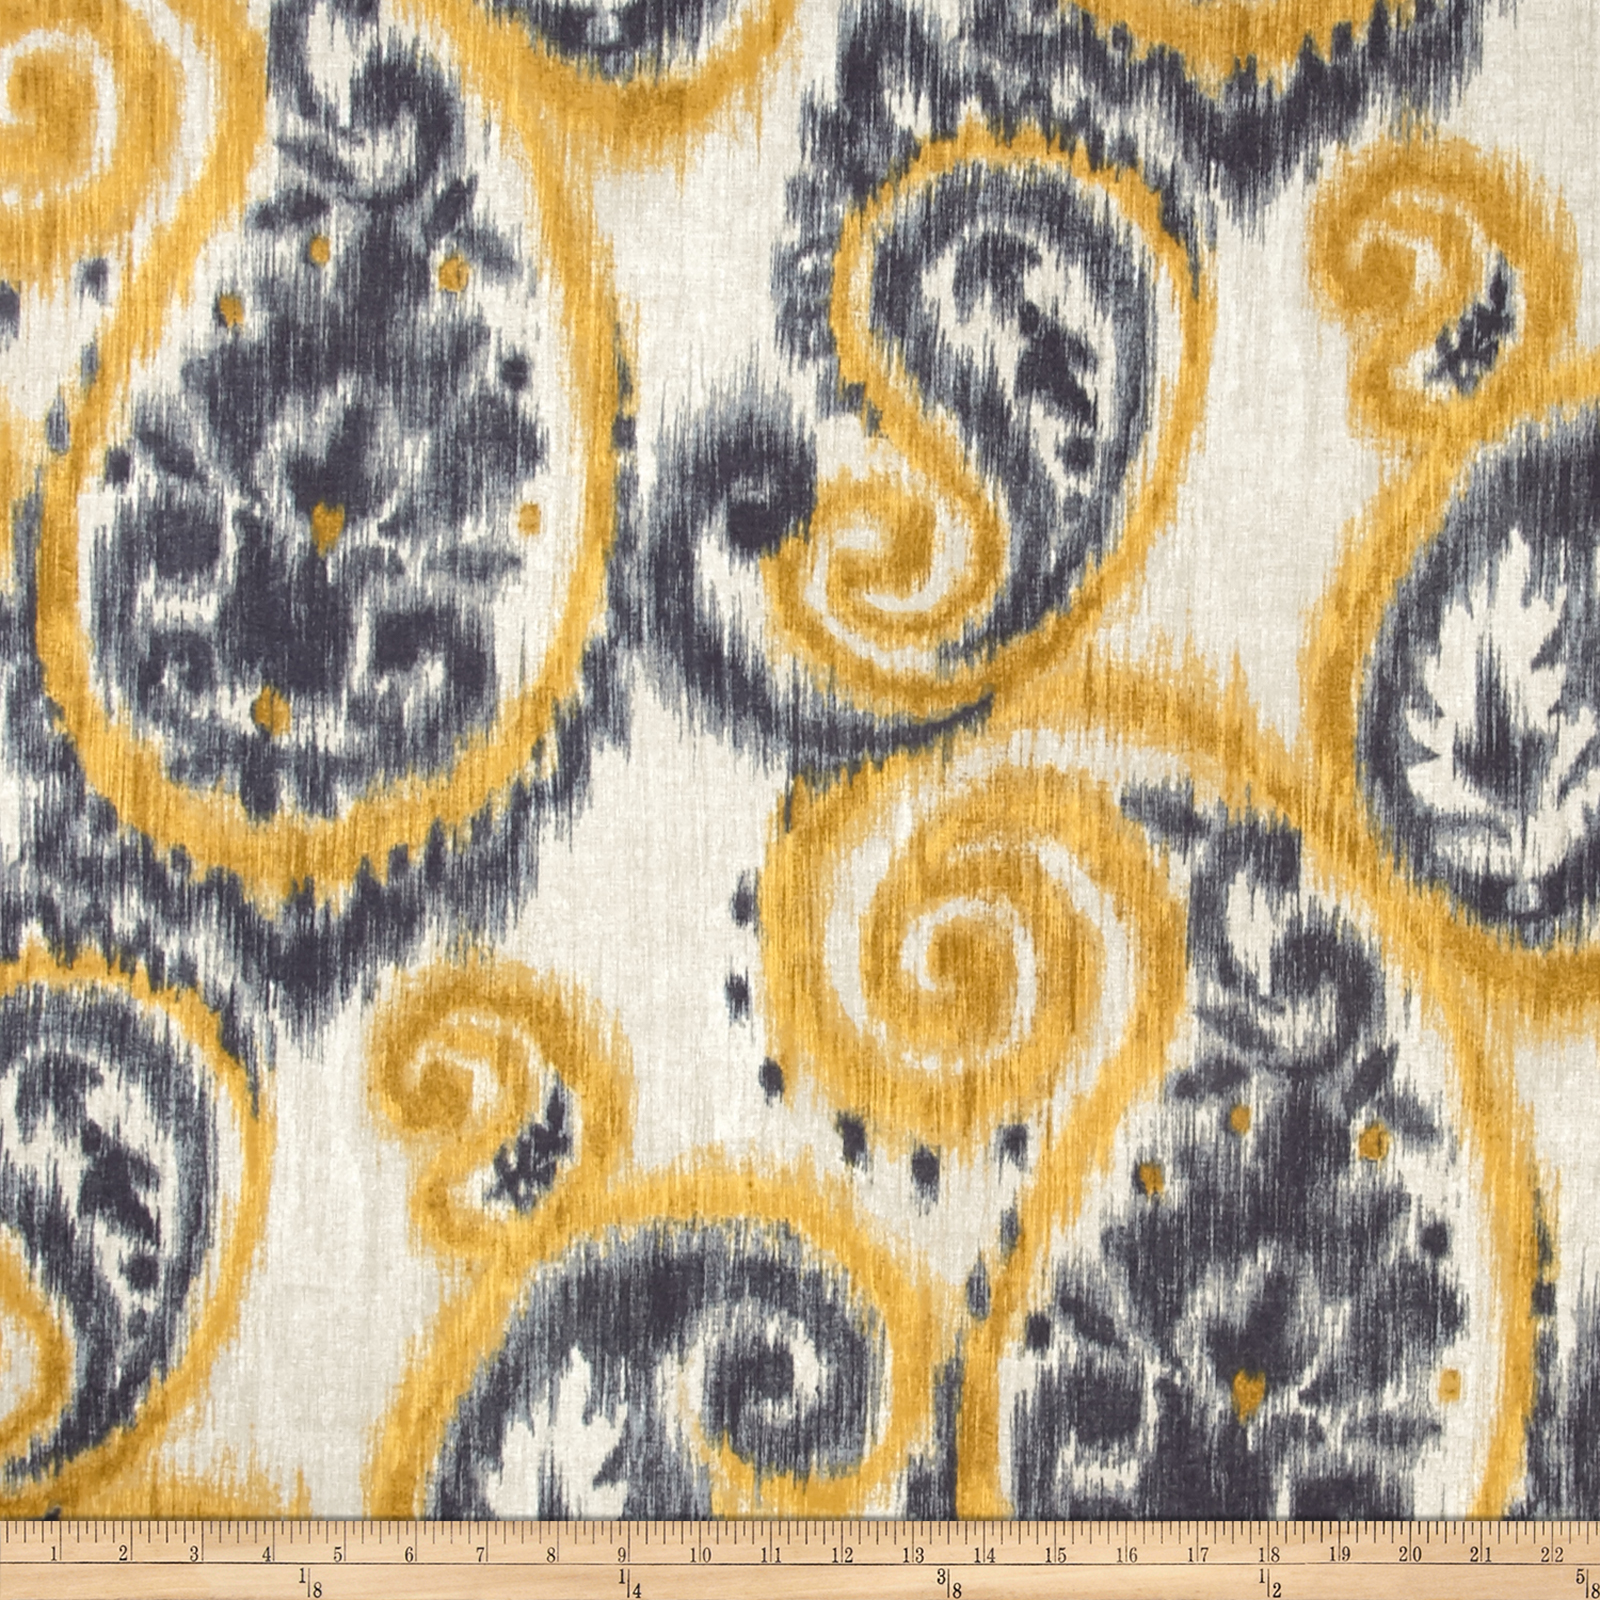 Richloom Indoor/Outdoor Sorista Patina Fabric by TNT in USA